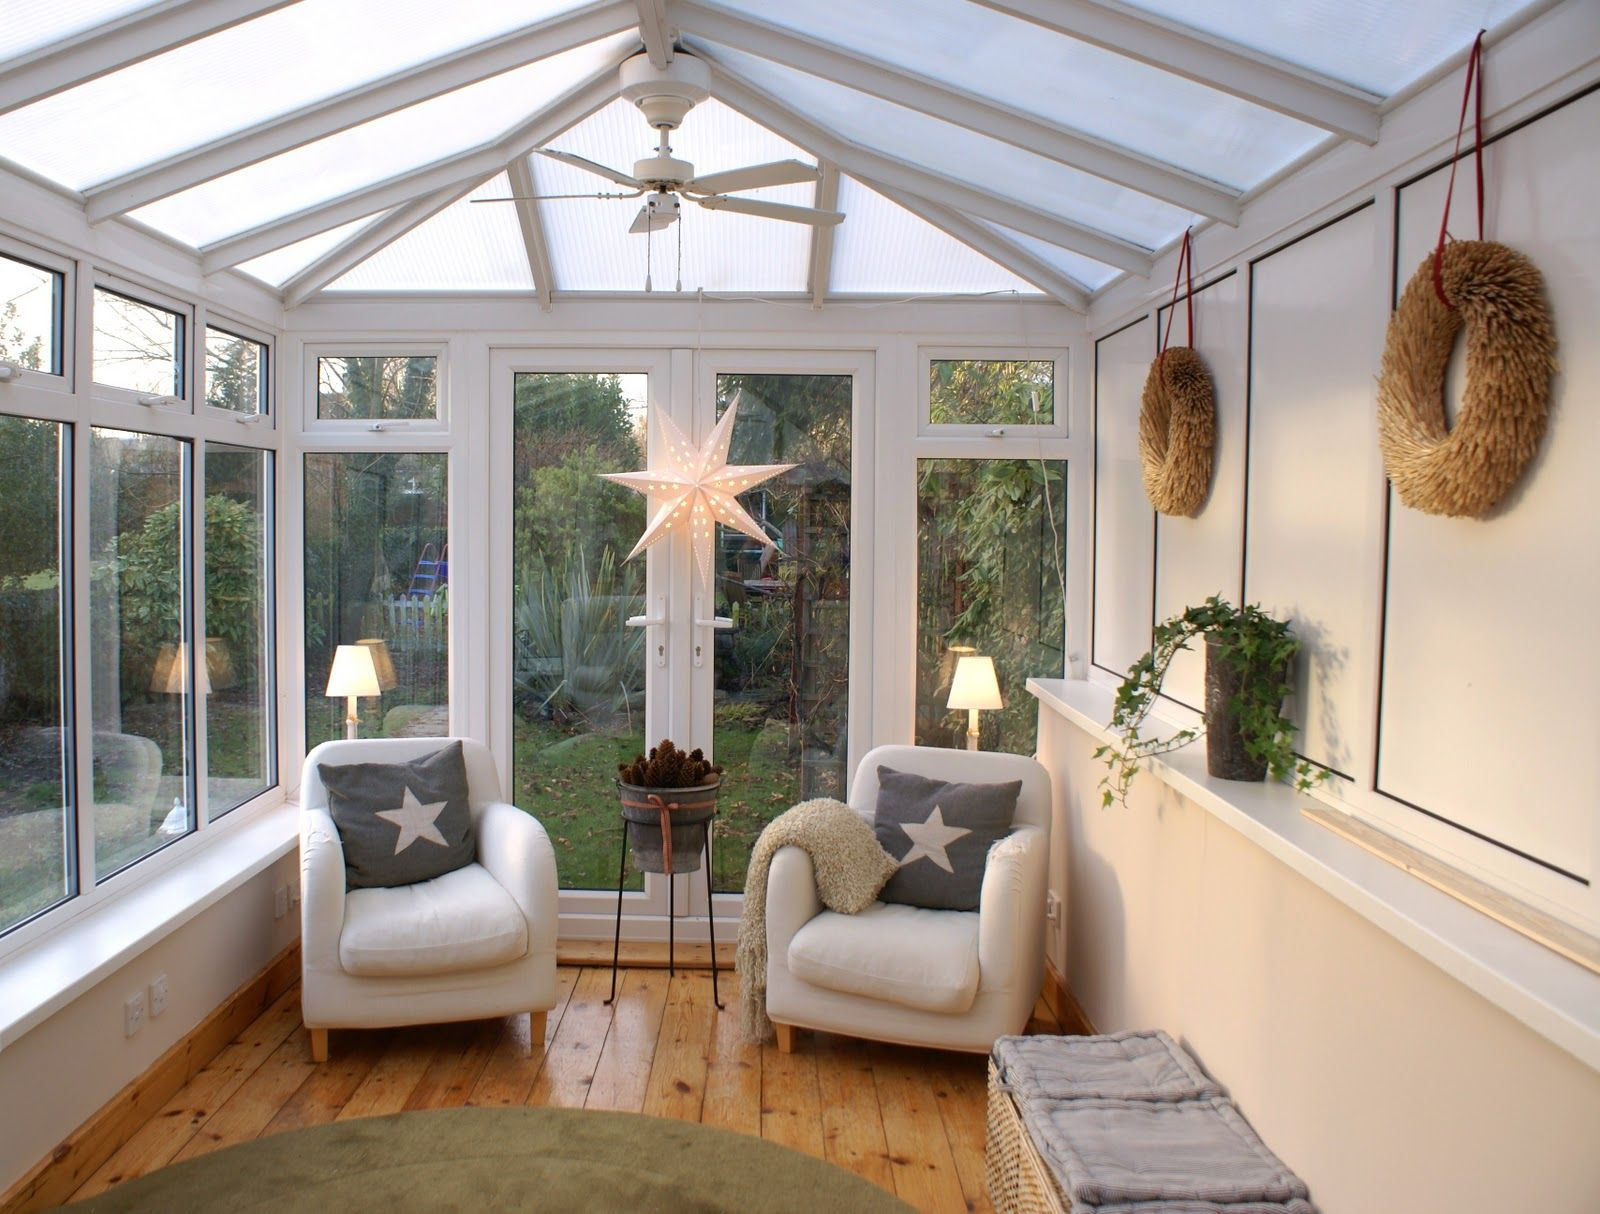 conservatory lighting ideas. The Swenglish Home. Conservatory Ideas Lighting Y